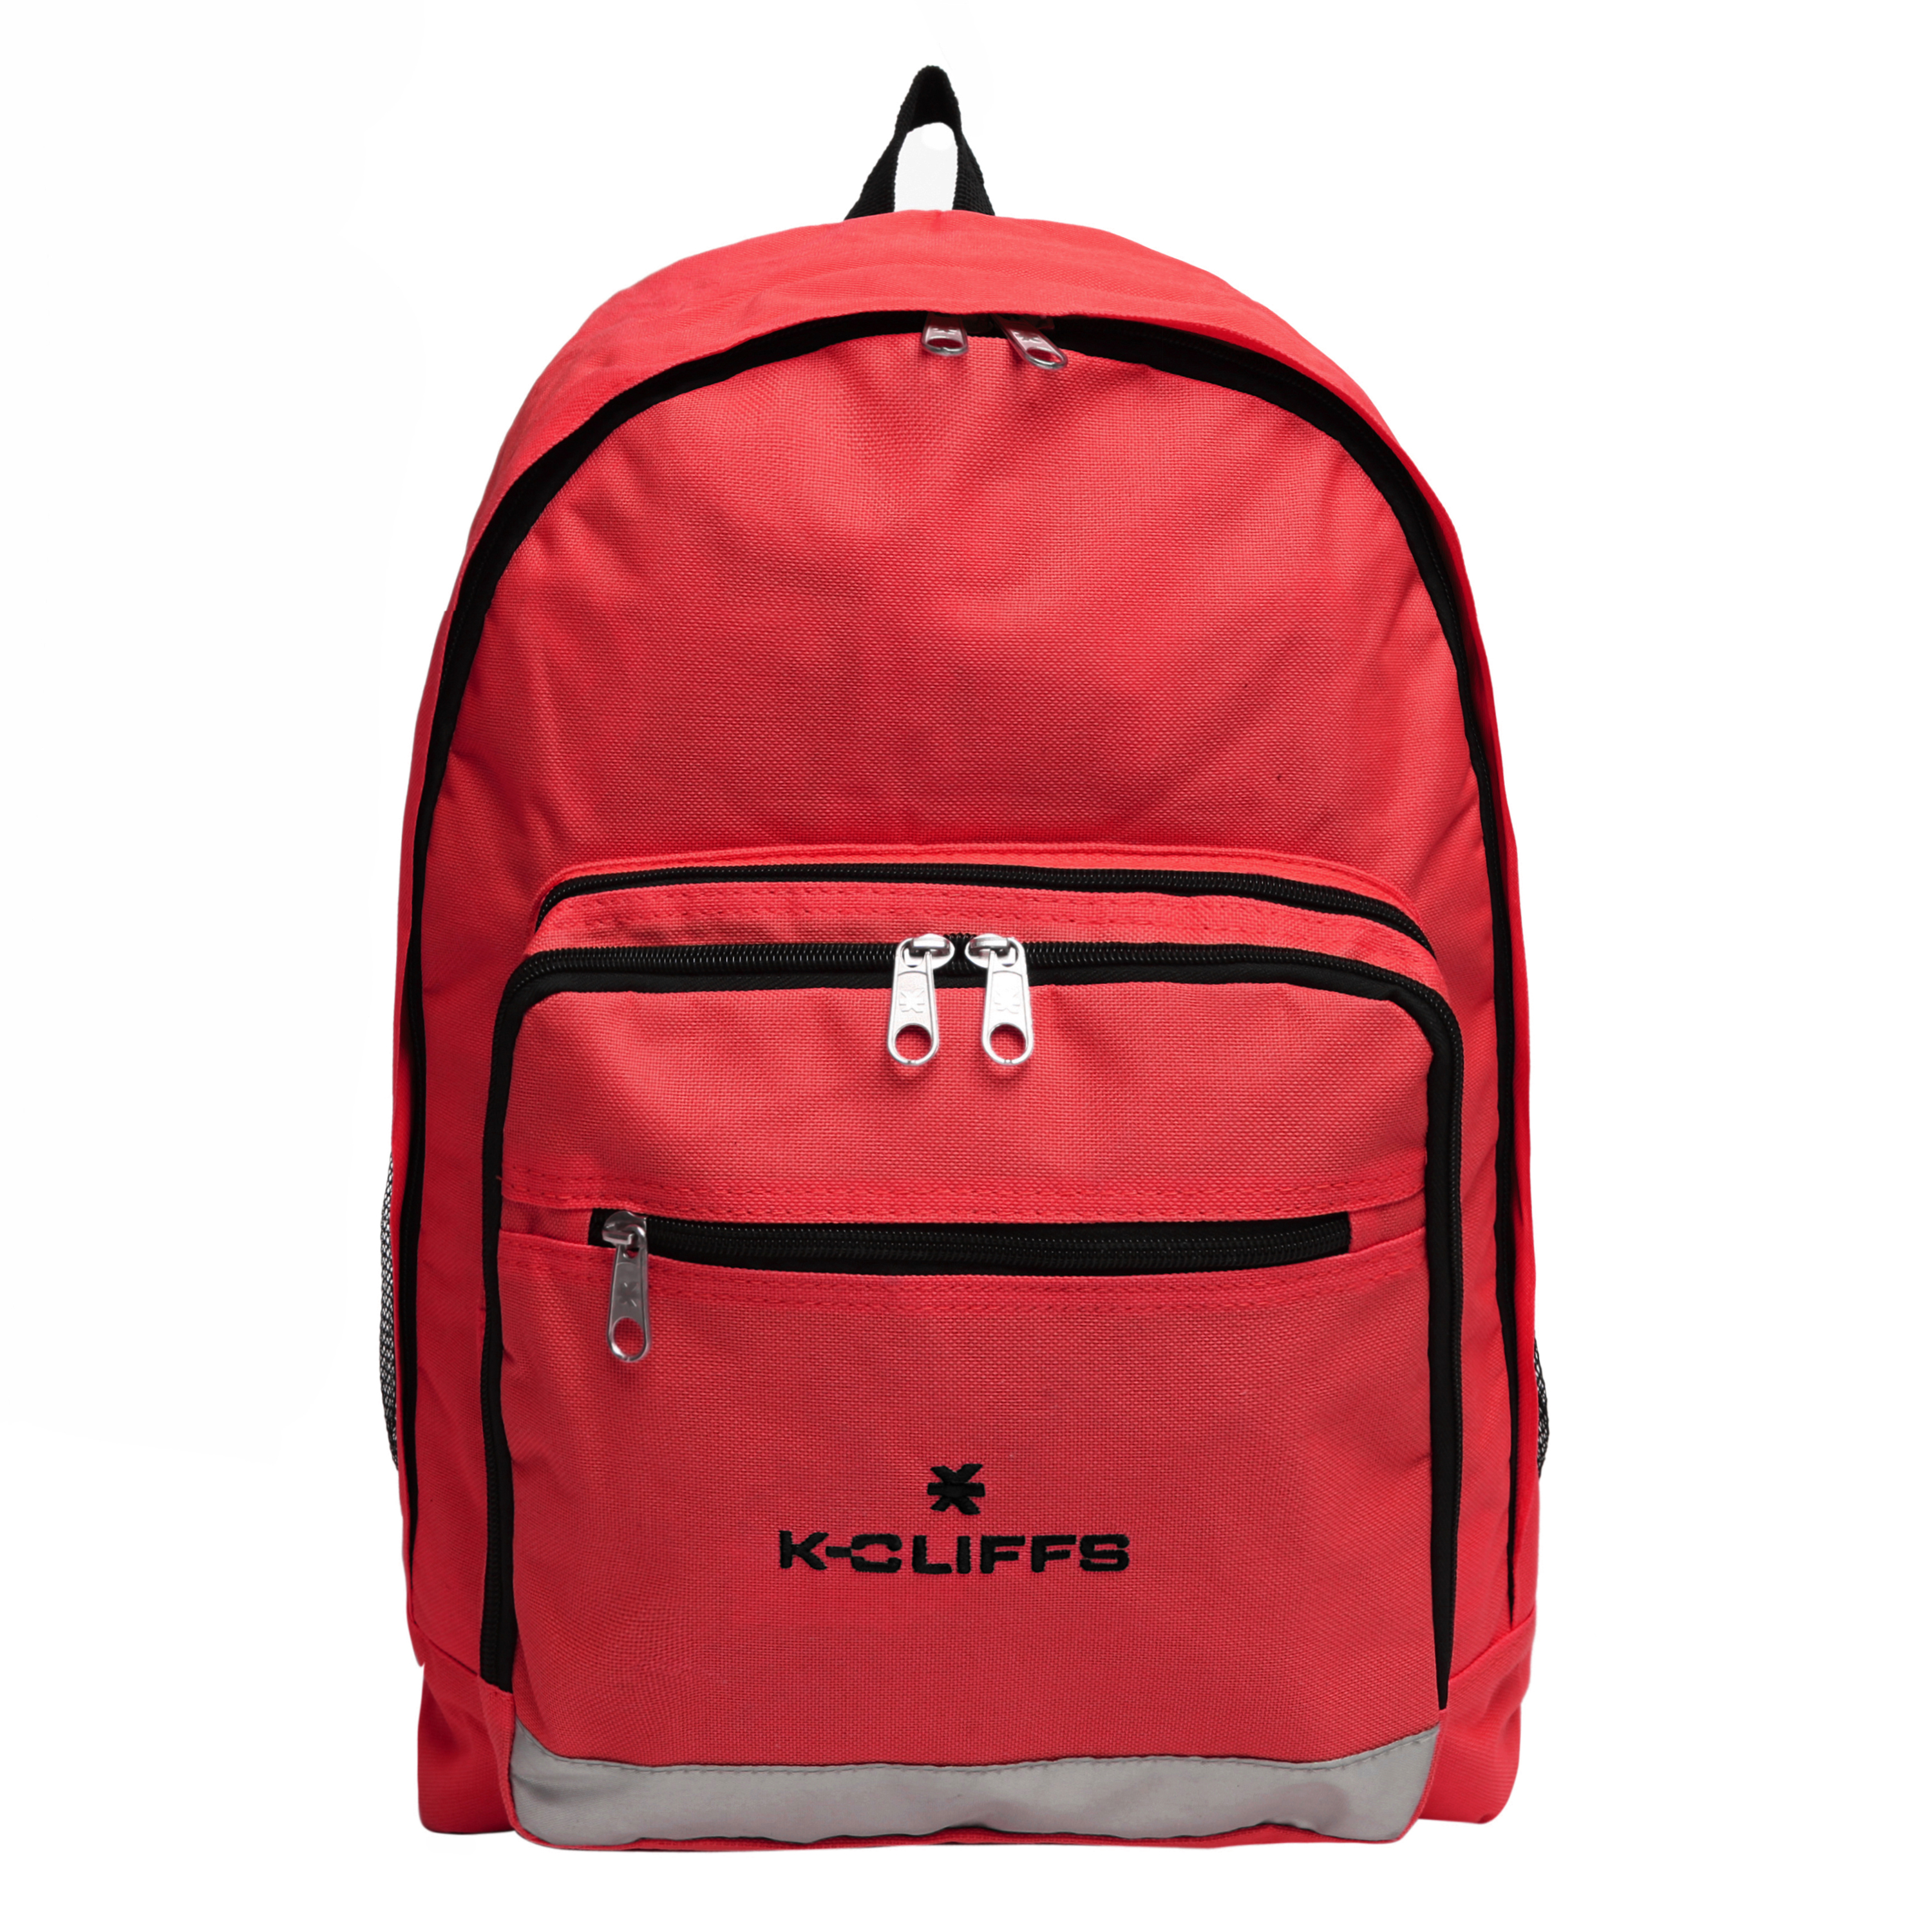 Wholesale Backpacks Red Multi Compartment Full Size Backpack with Reflective Strip